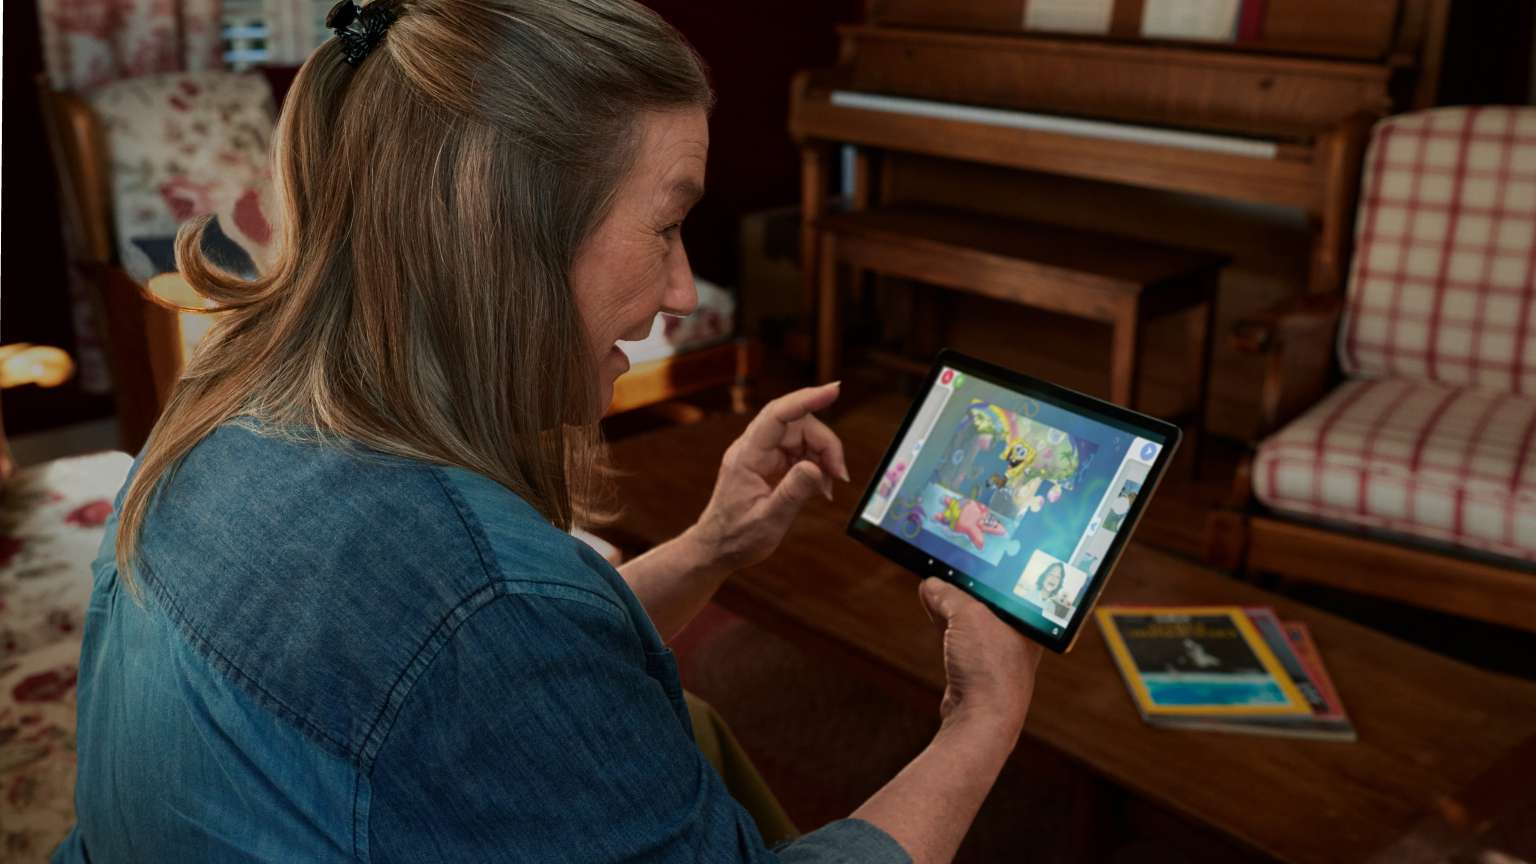 Woman using tablet to interact with Amazon Glow